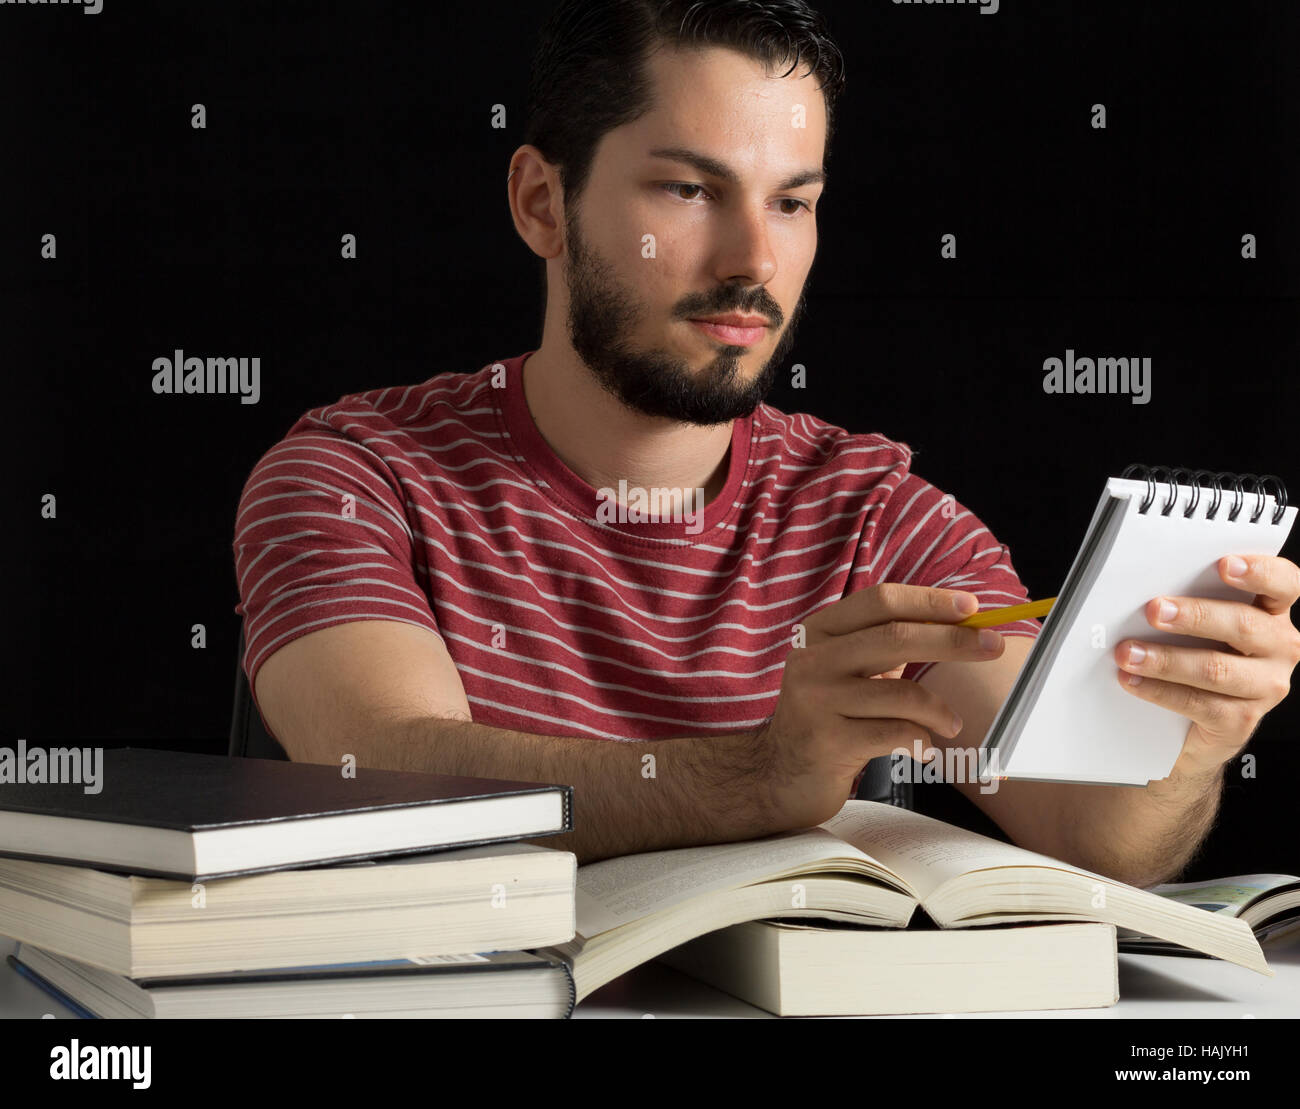 Young male reviwing personal notes during studies - Stock Image